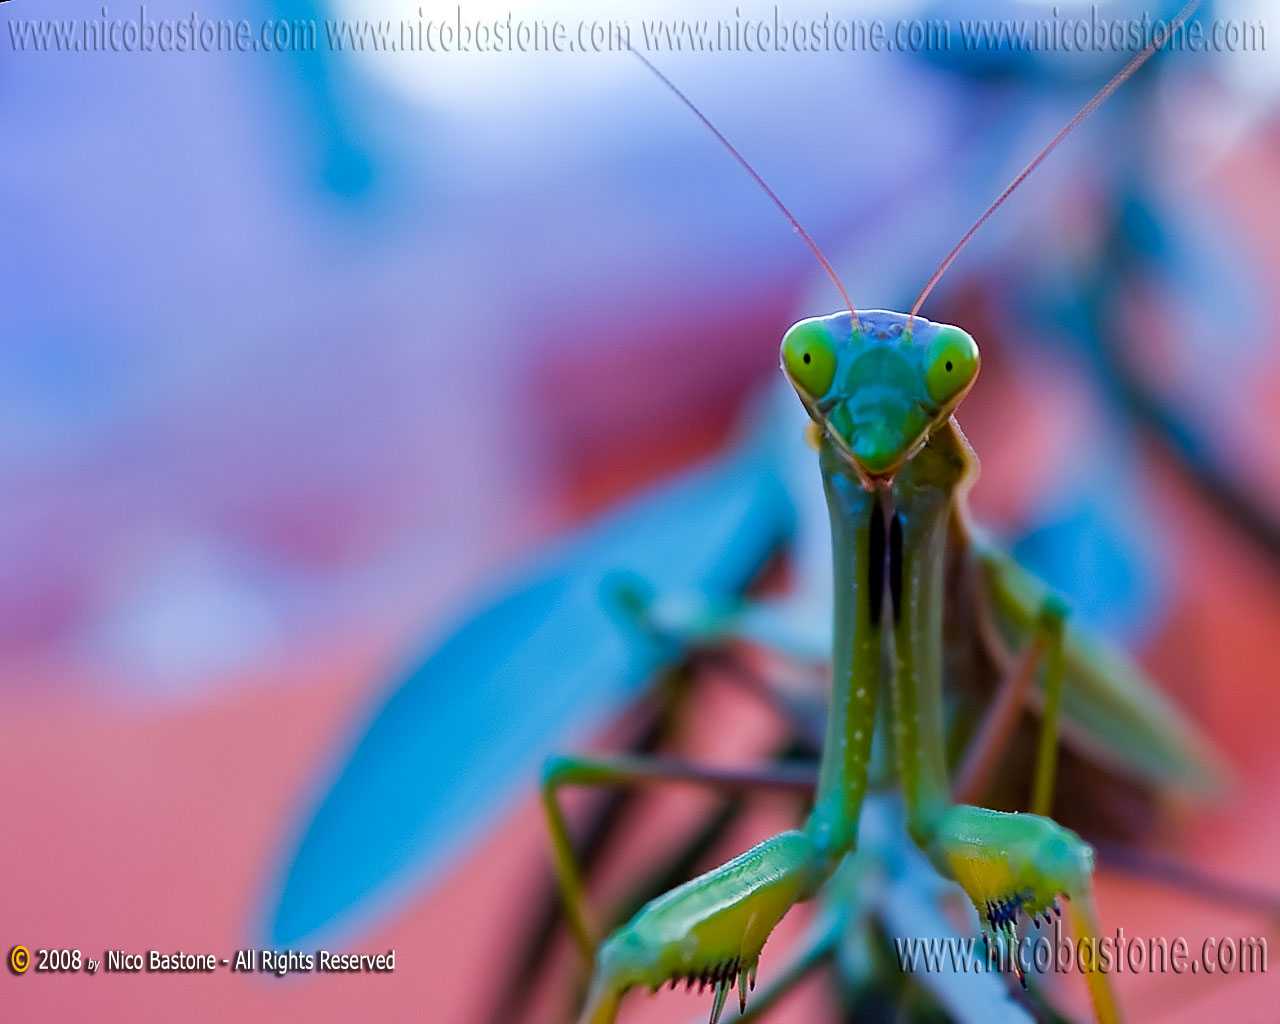 Mantide Religiosa - A praying mantes - Wallpapers Sfondi per Desktop - Copyright by Nico Bastone - All Rights Reserved